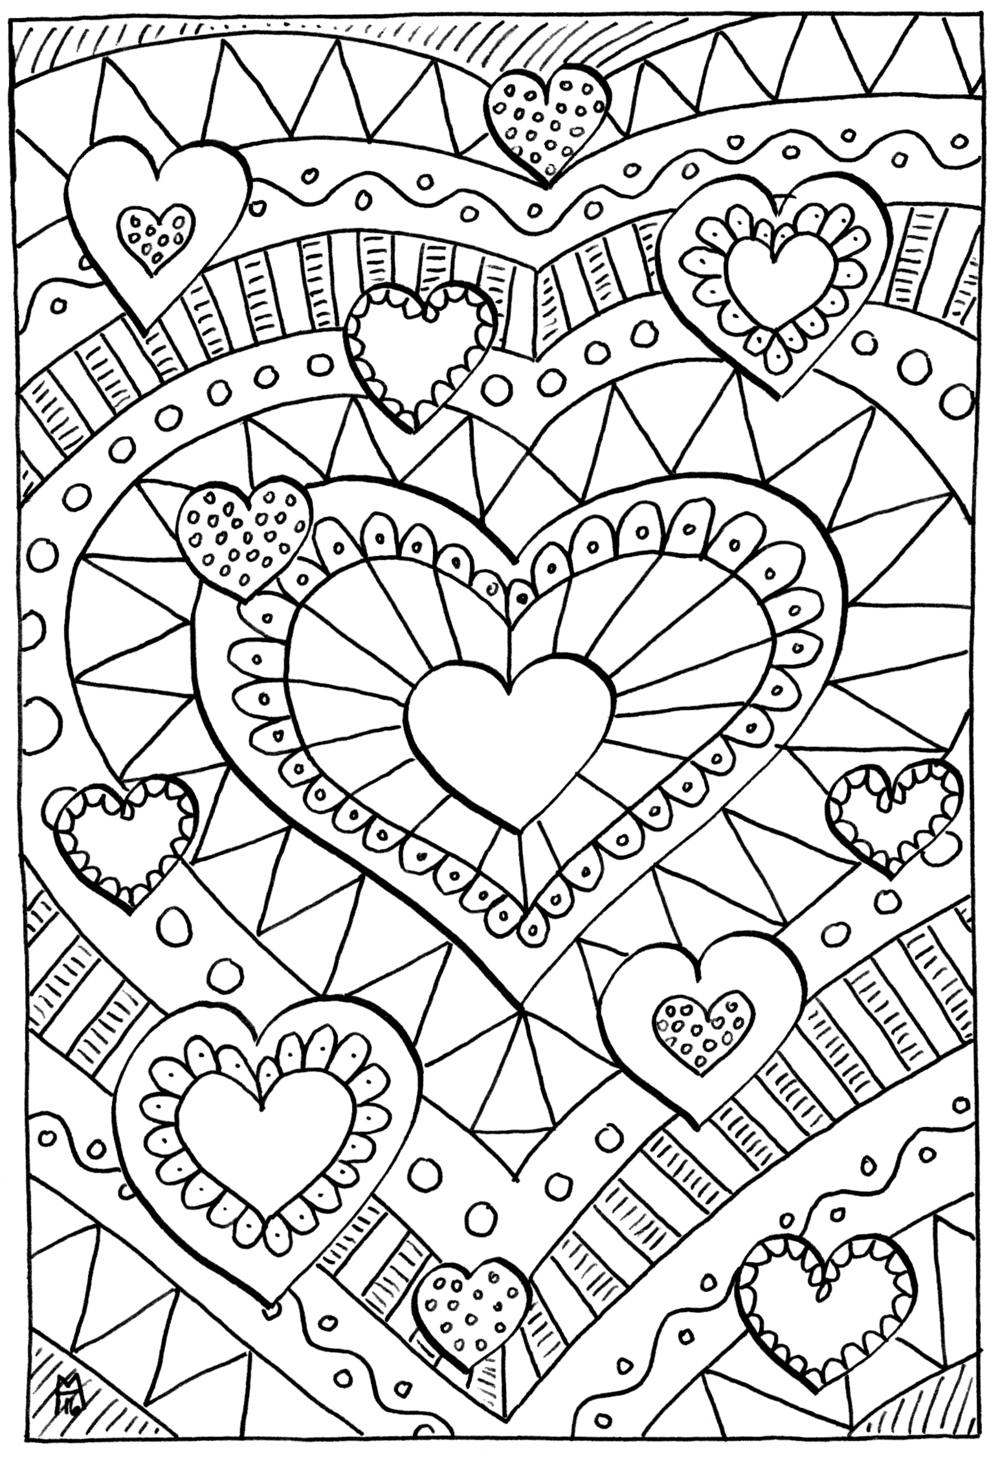 Healing Hearts Coloring Page Love Coloring Pages Heart Coloring Pages Valentine Coloring Pages